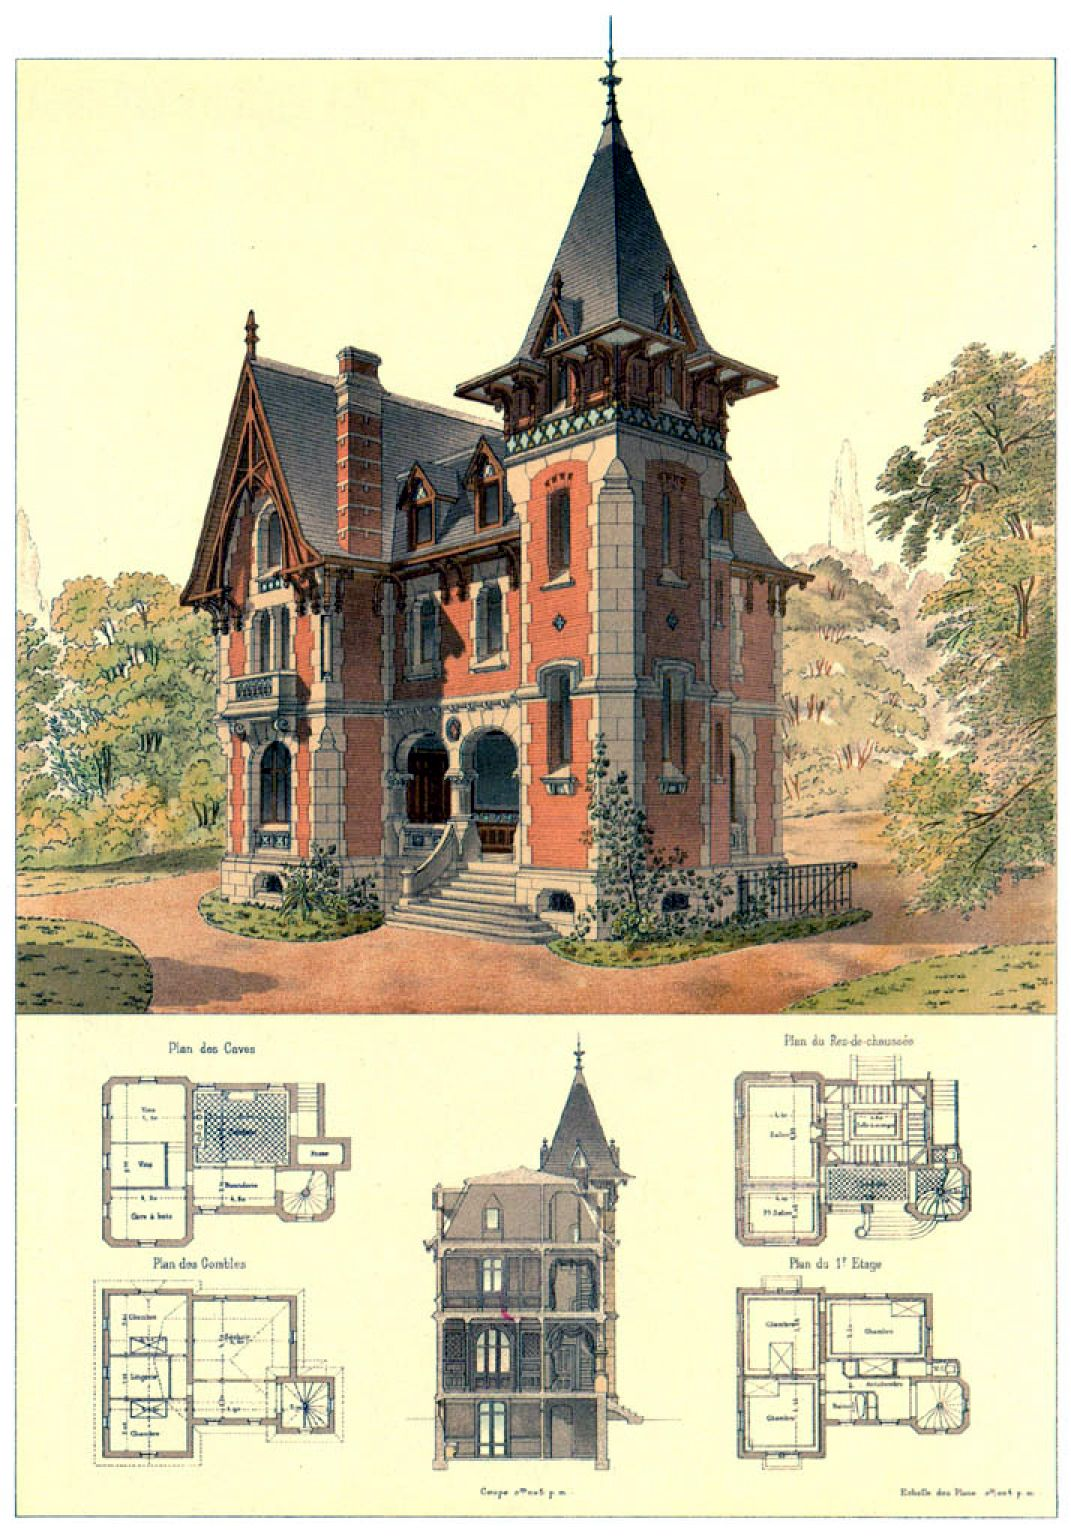 gothic victorian house plans victorian architecture architectural models victorian house plans home design floor plans 291